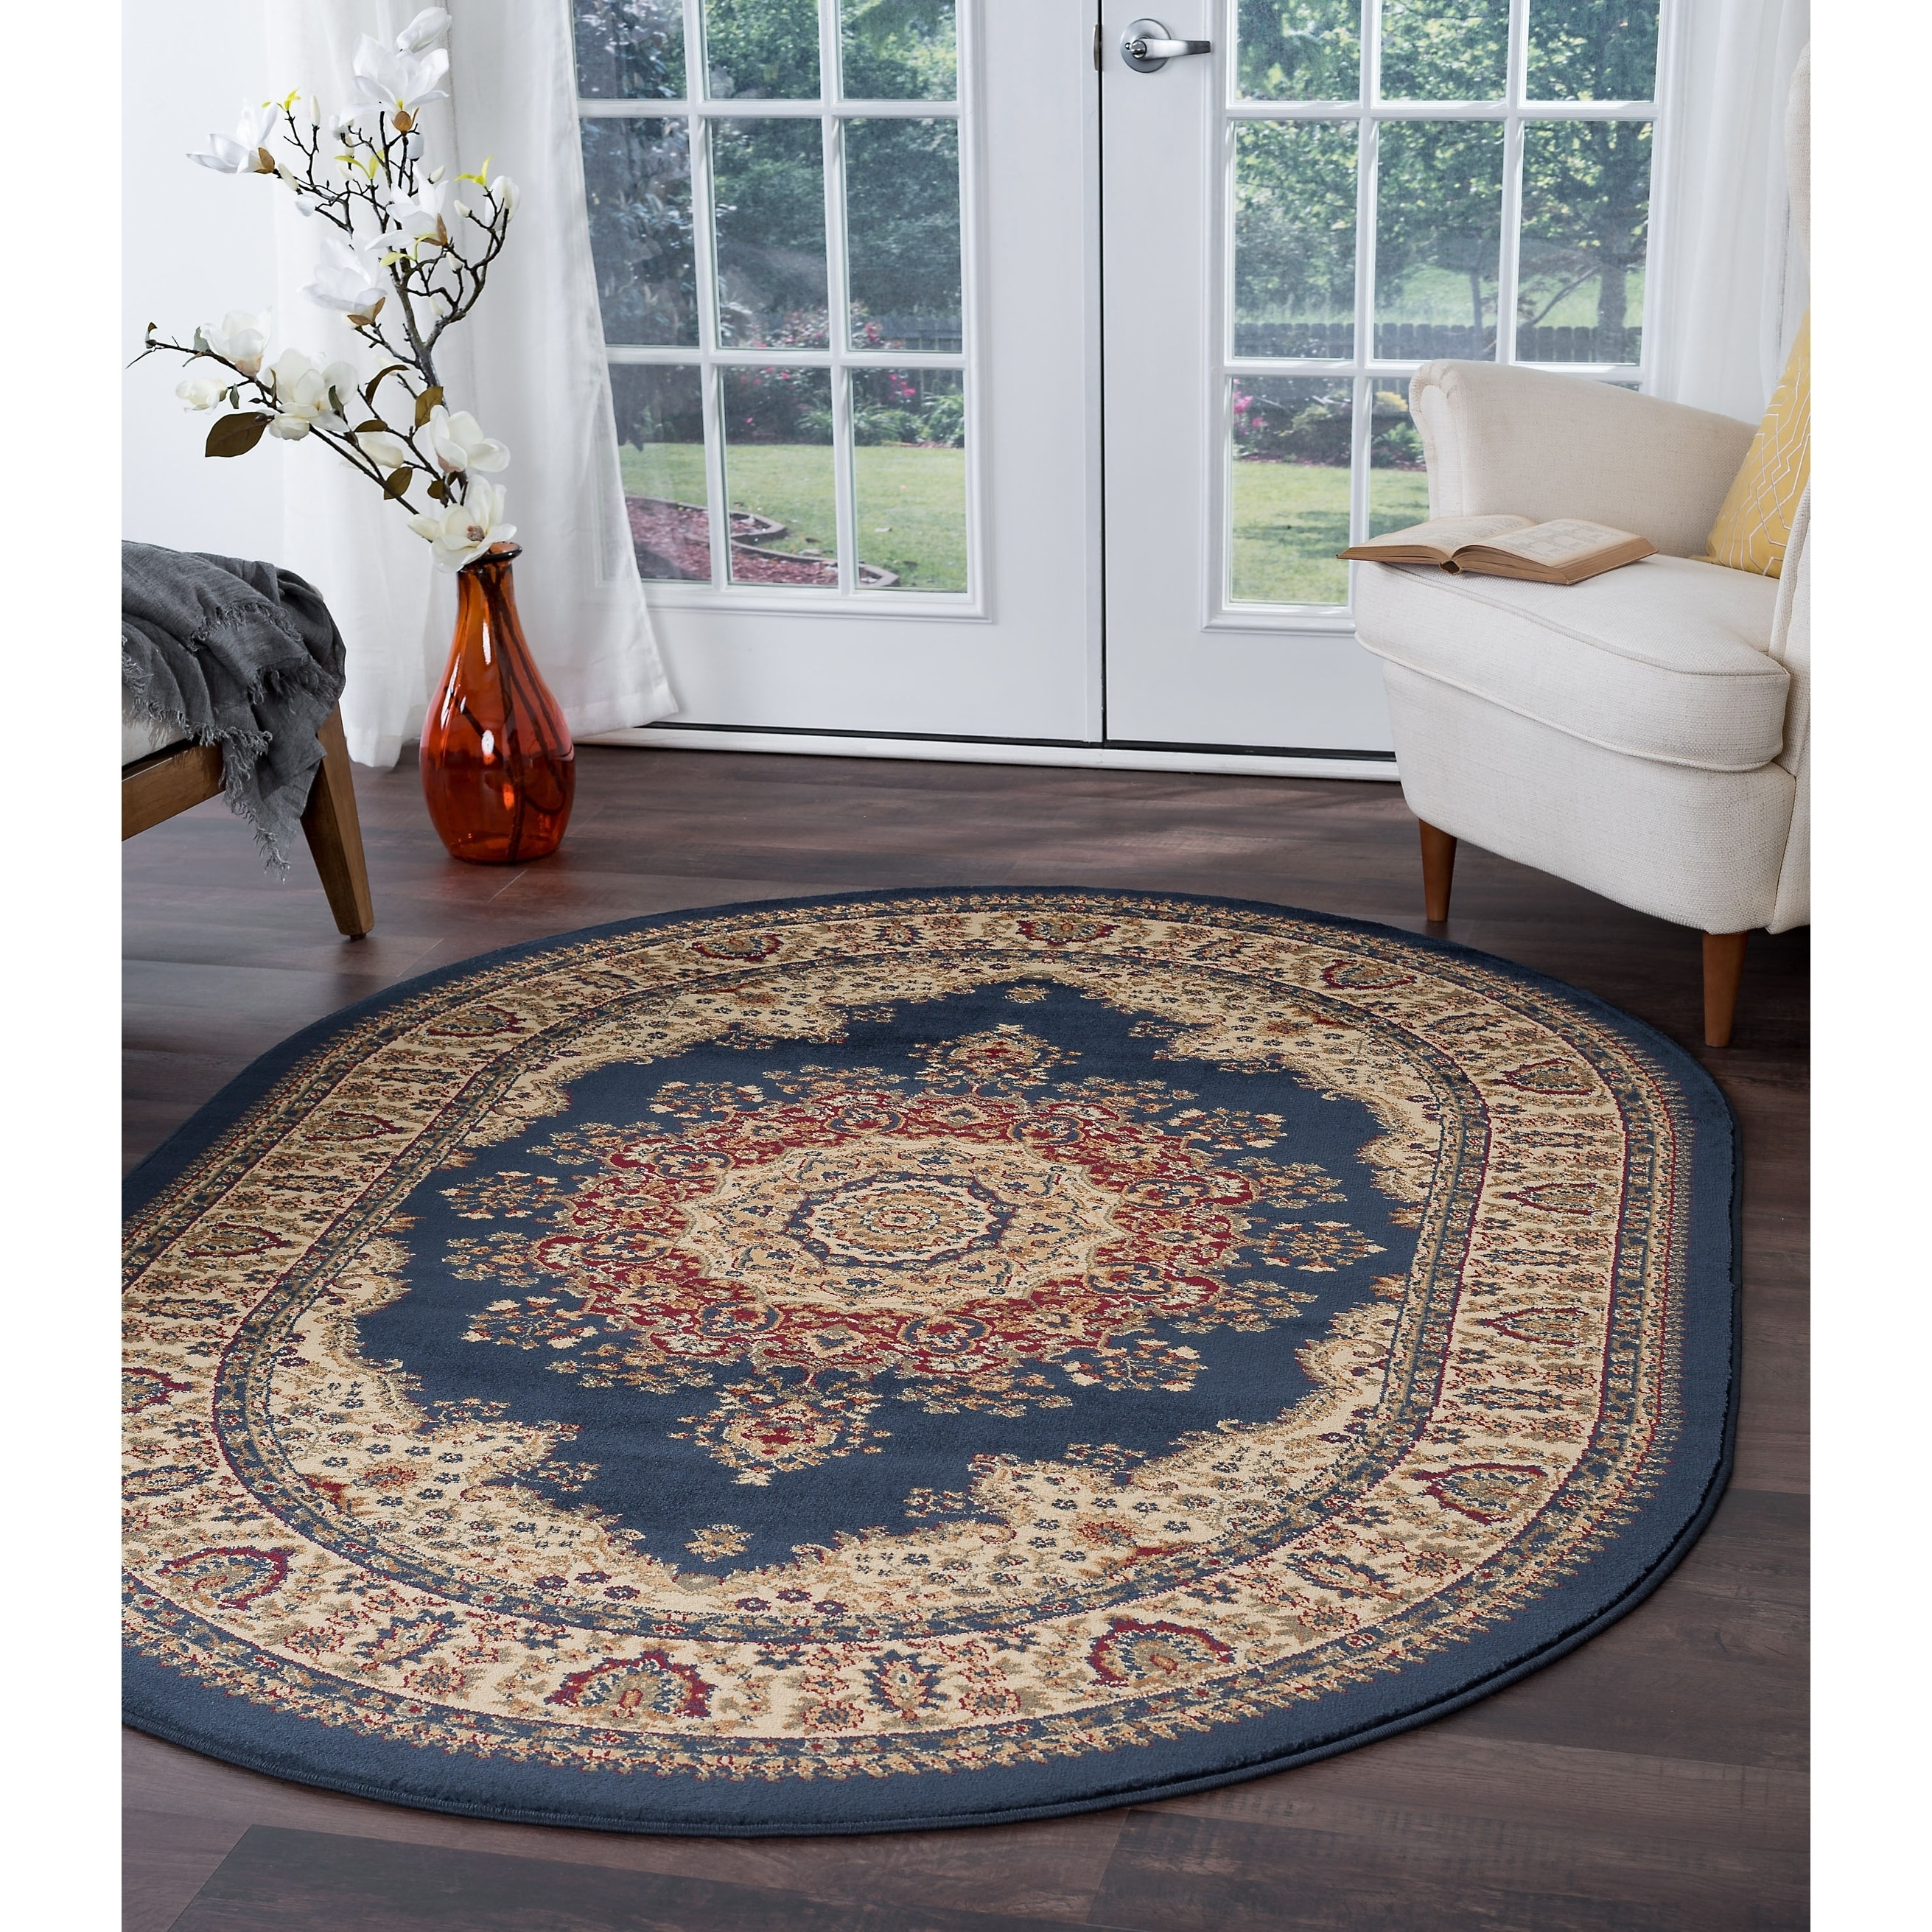 Image of: Shop Alise Rugs Soho Traditional Oriental Oval Area Rug 5 3 X 7 3 Overstock 9306961